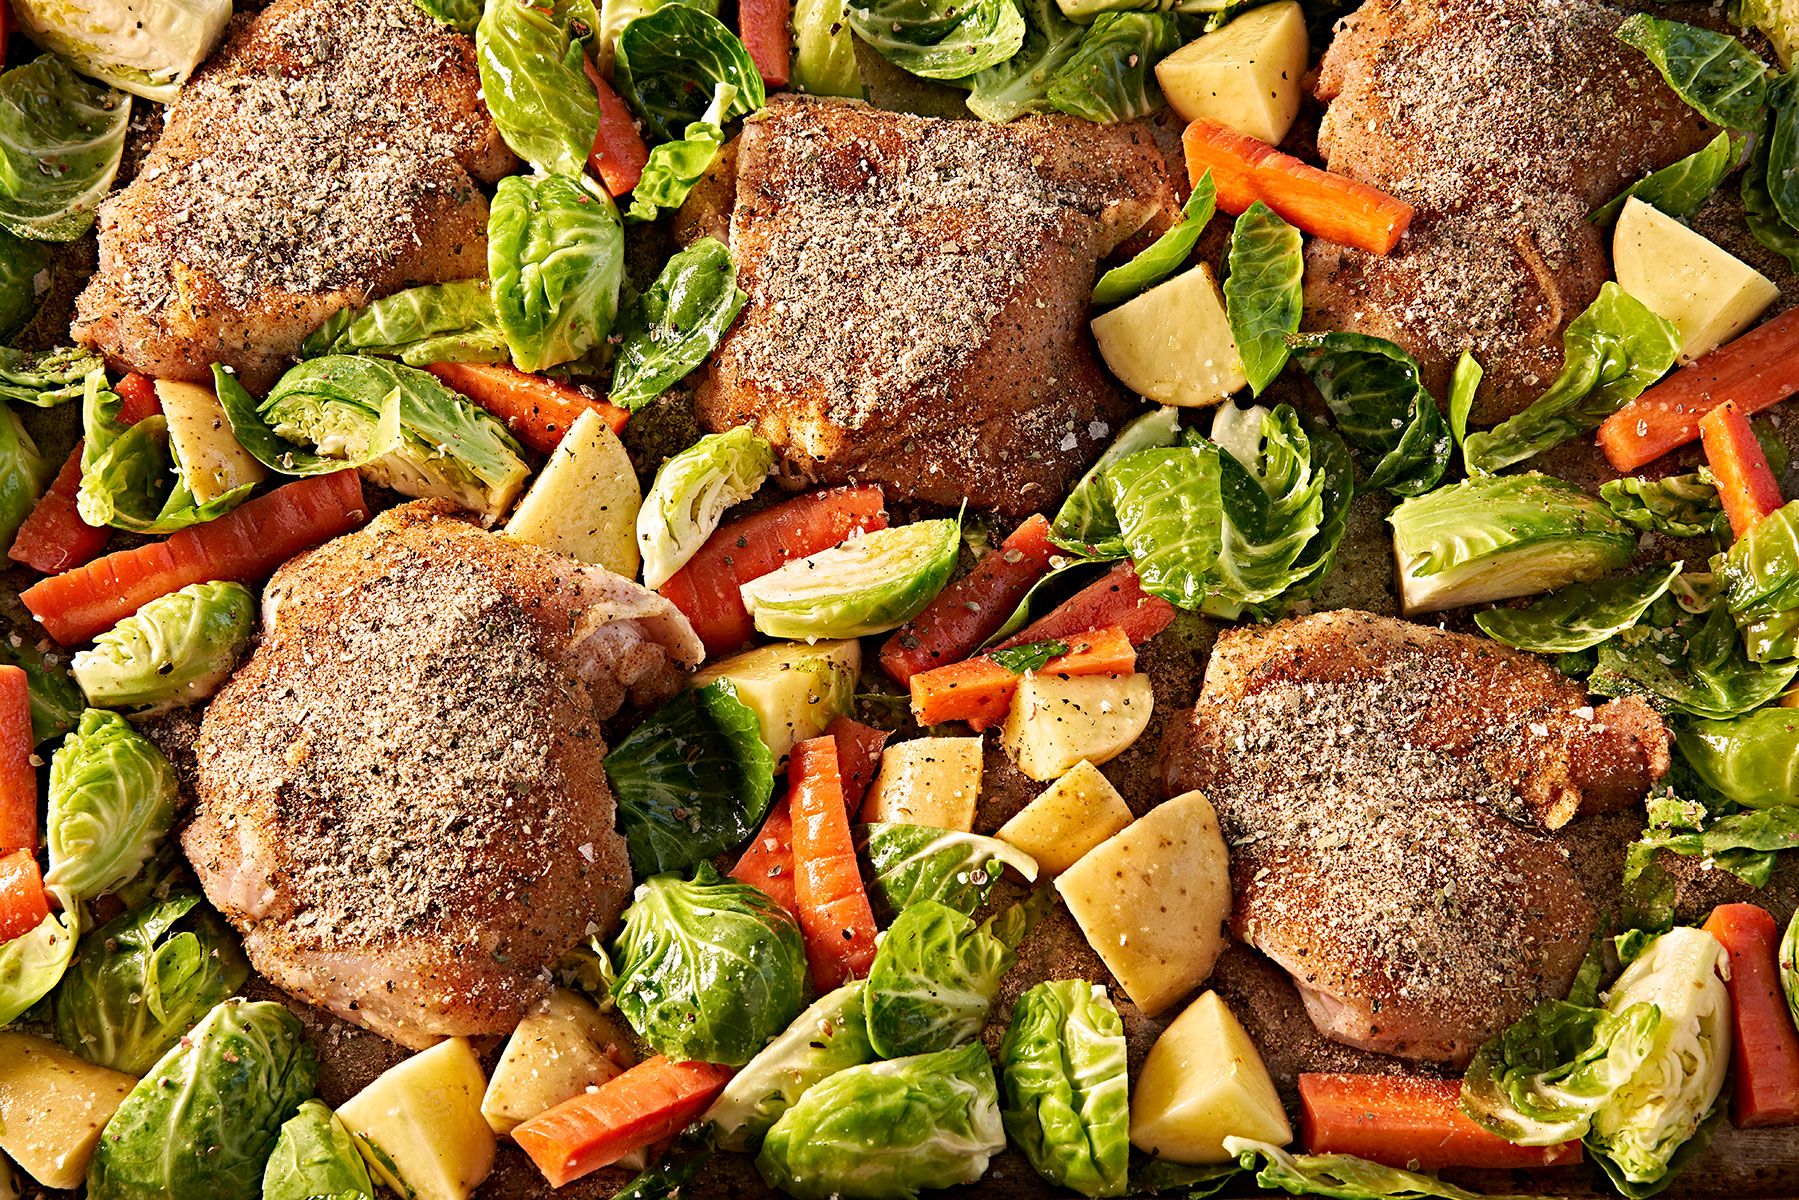 Seasoned raw chicken thighs ready roast in a sheet pan with vegetables.